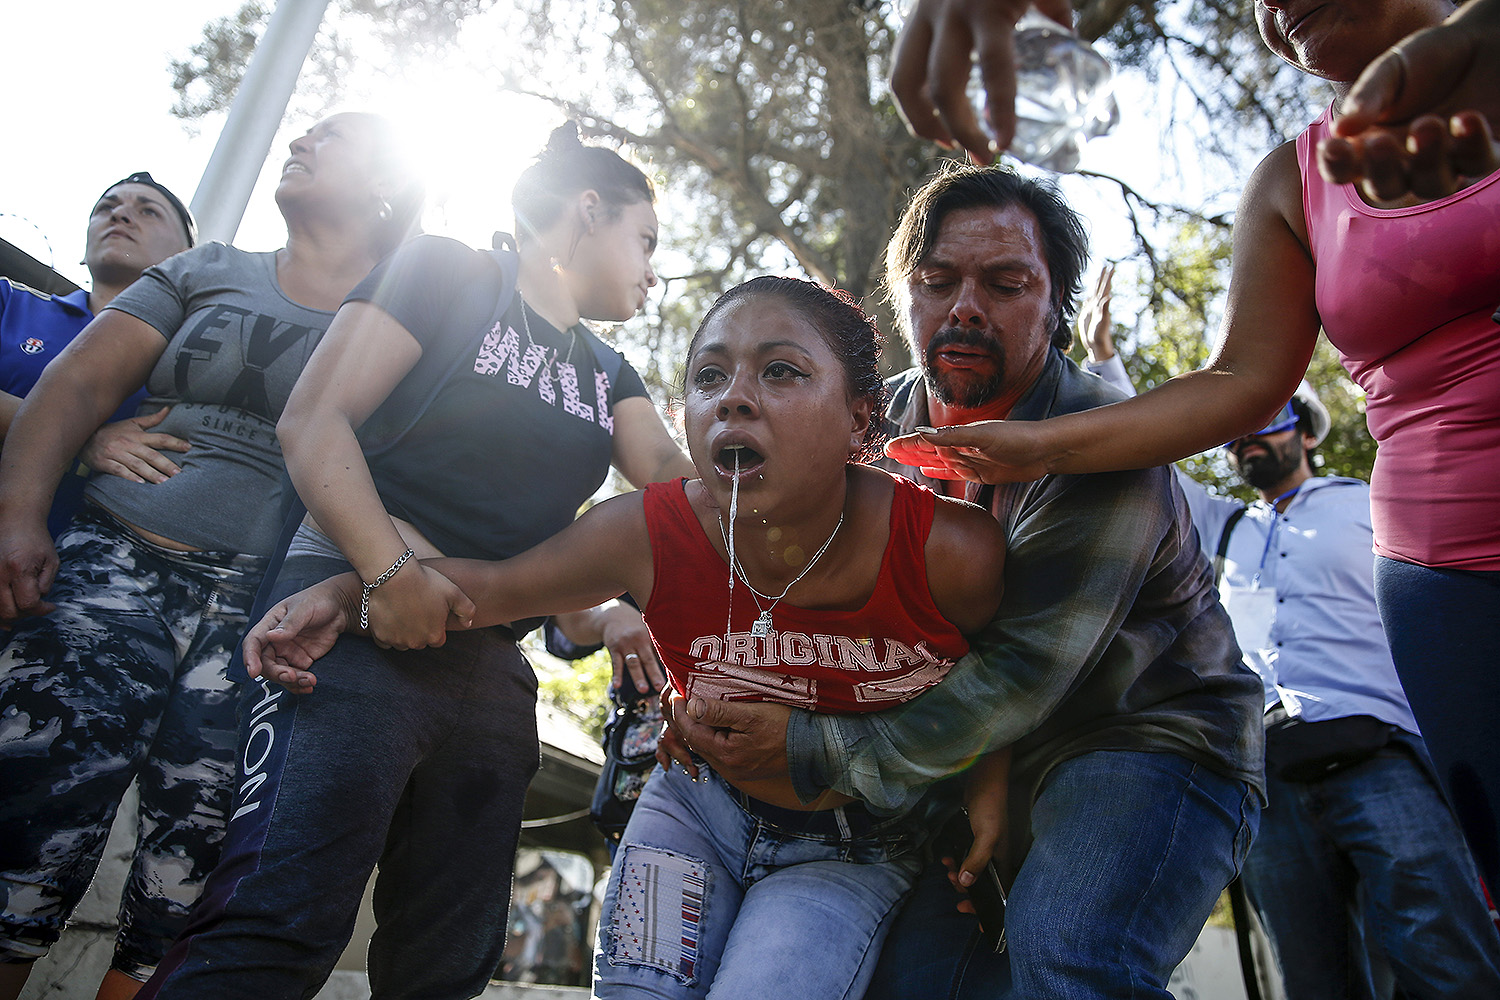 Relatives react outside Santiago 1 prison after a large number of inmates attempted to escape amid panic over the spread of the coronavirus in Santiago, Chile, on March 19. JAVIER TORRES/AFP via Getty Images